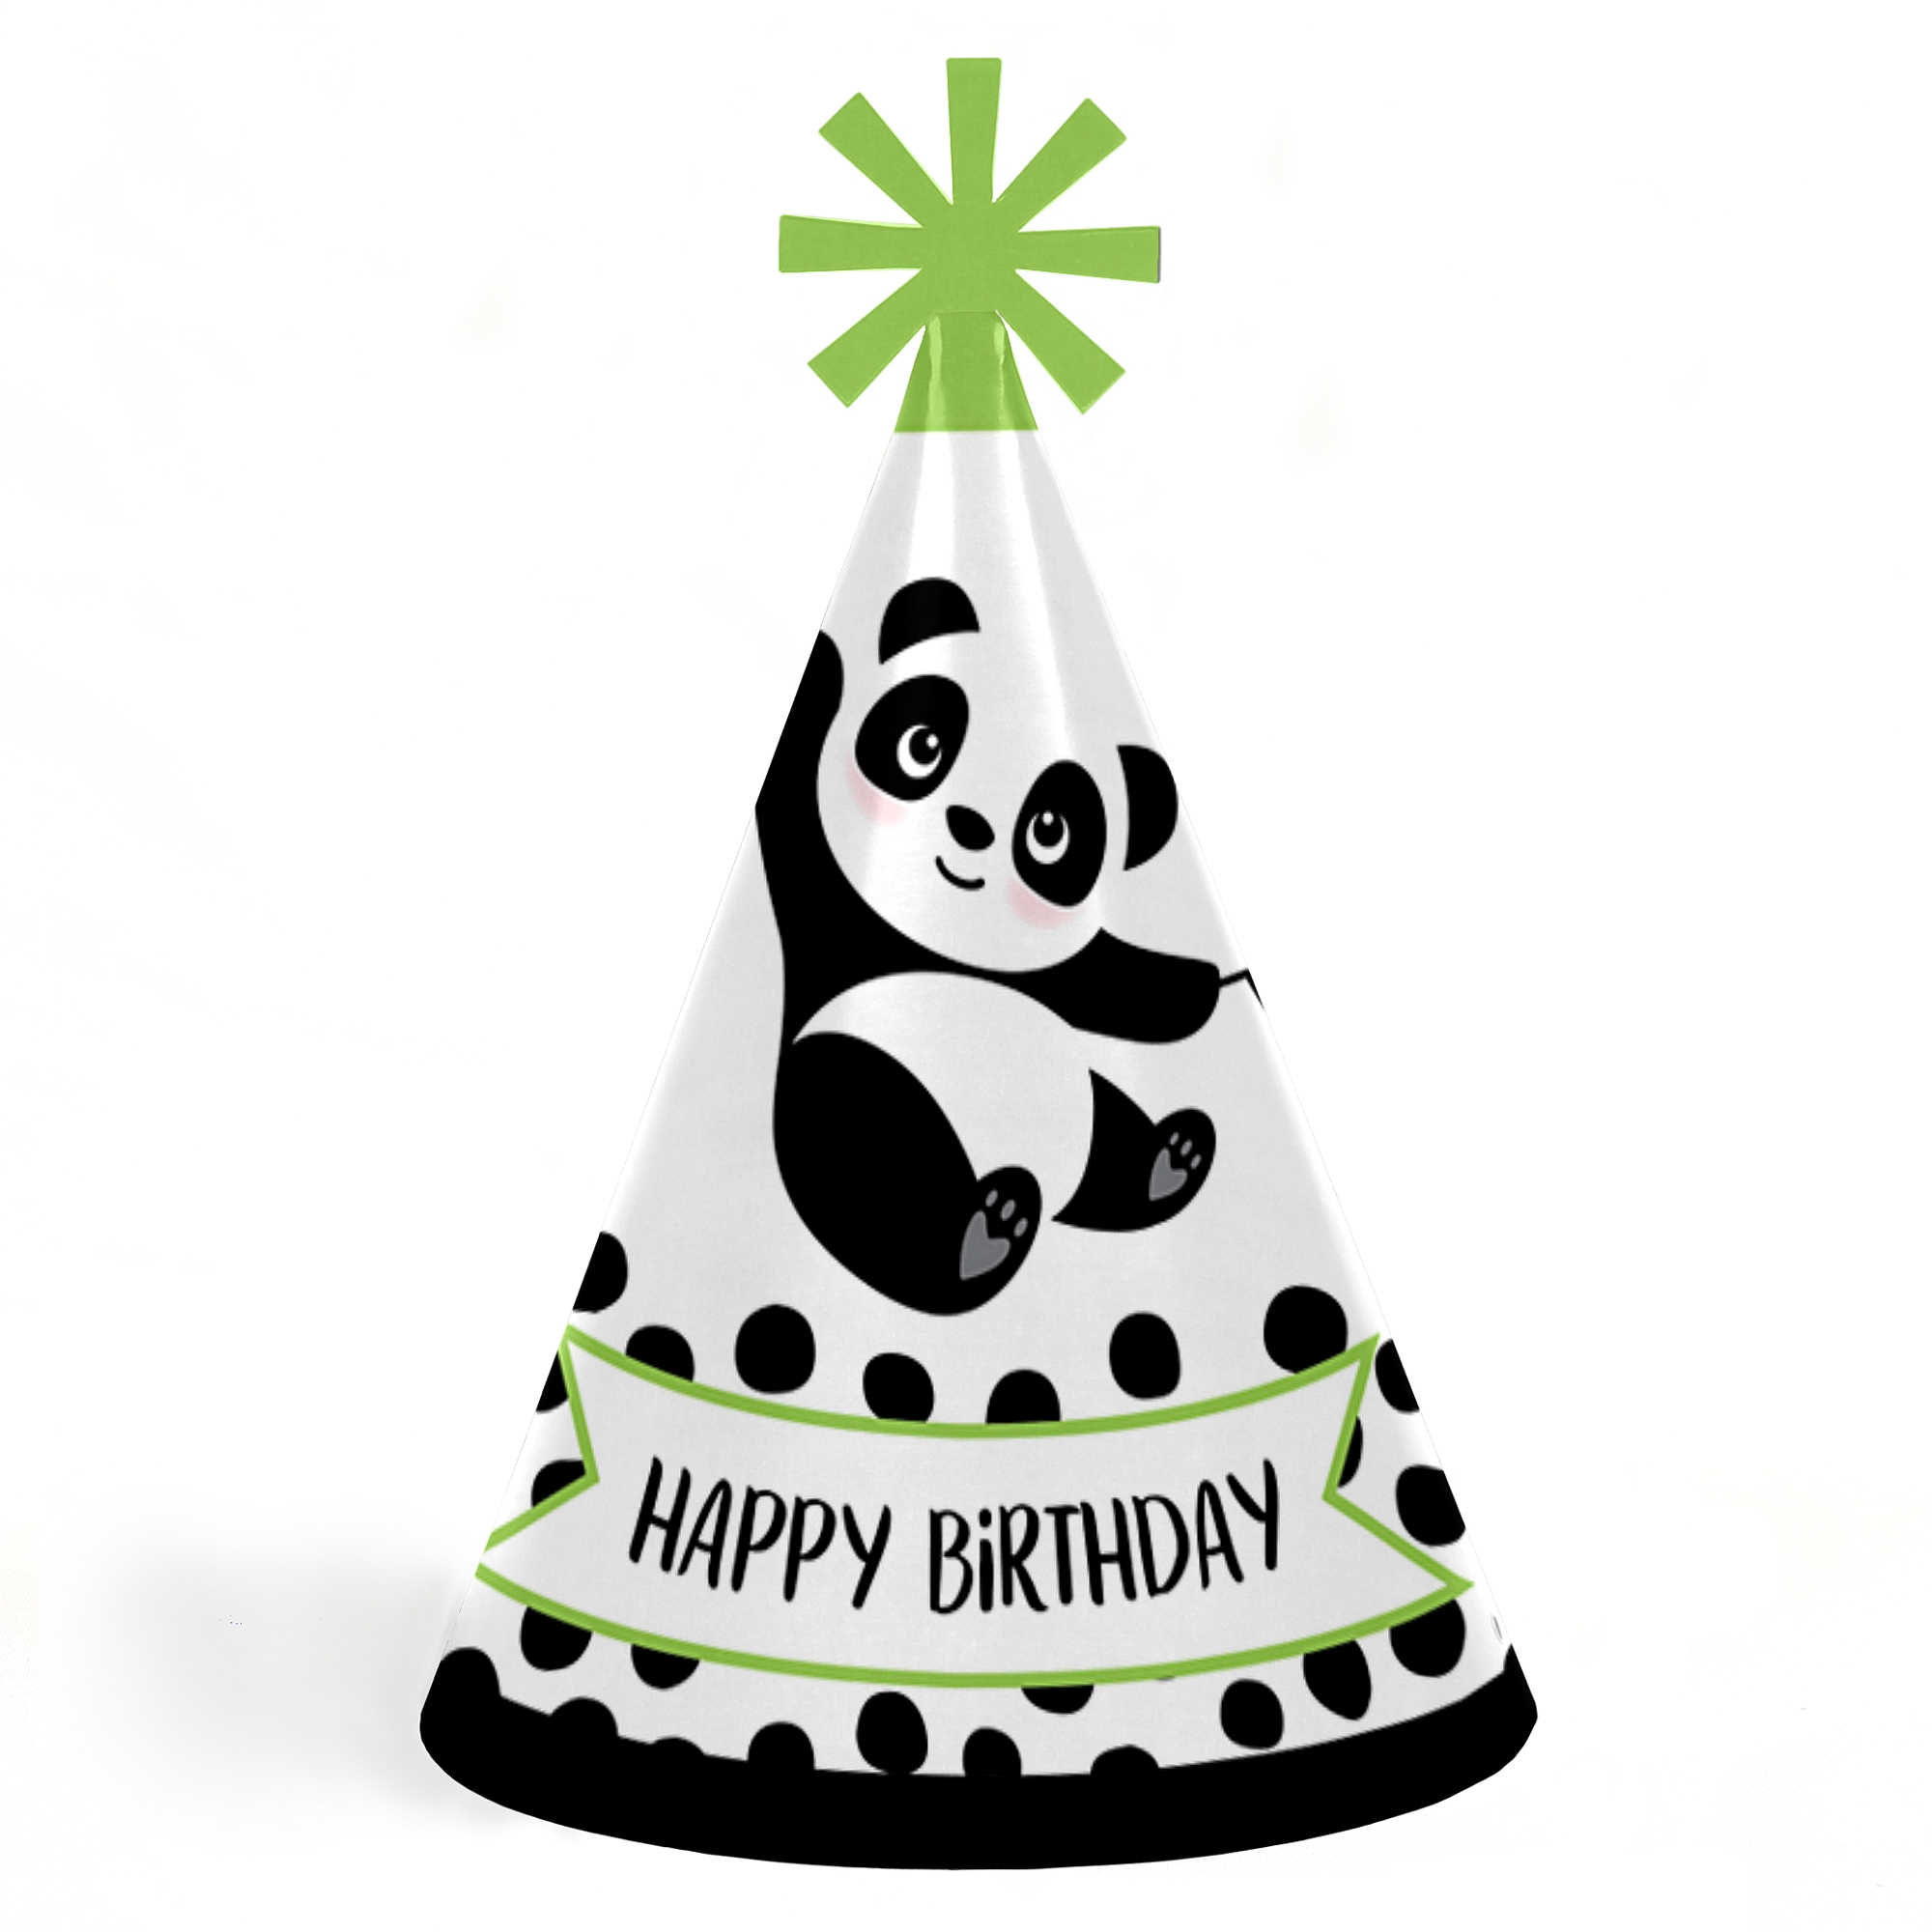 Party Like a Panda Bear - Cone Happy Birthday Party Hats for Kids and Adults - Set of 8 (Standard Size)